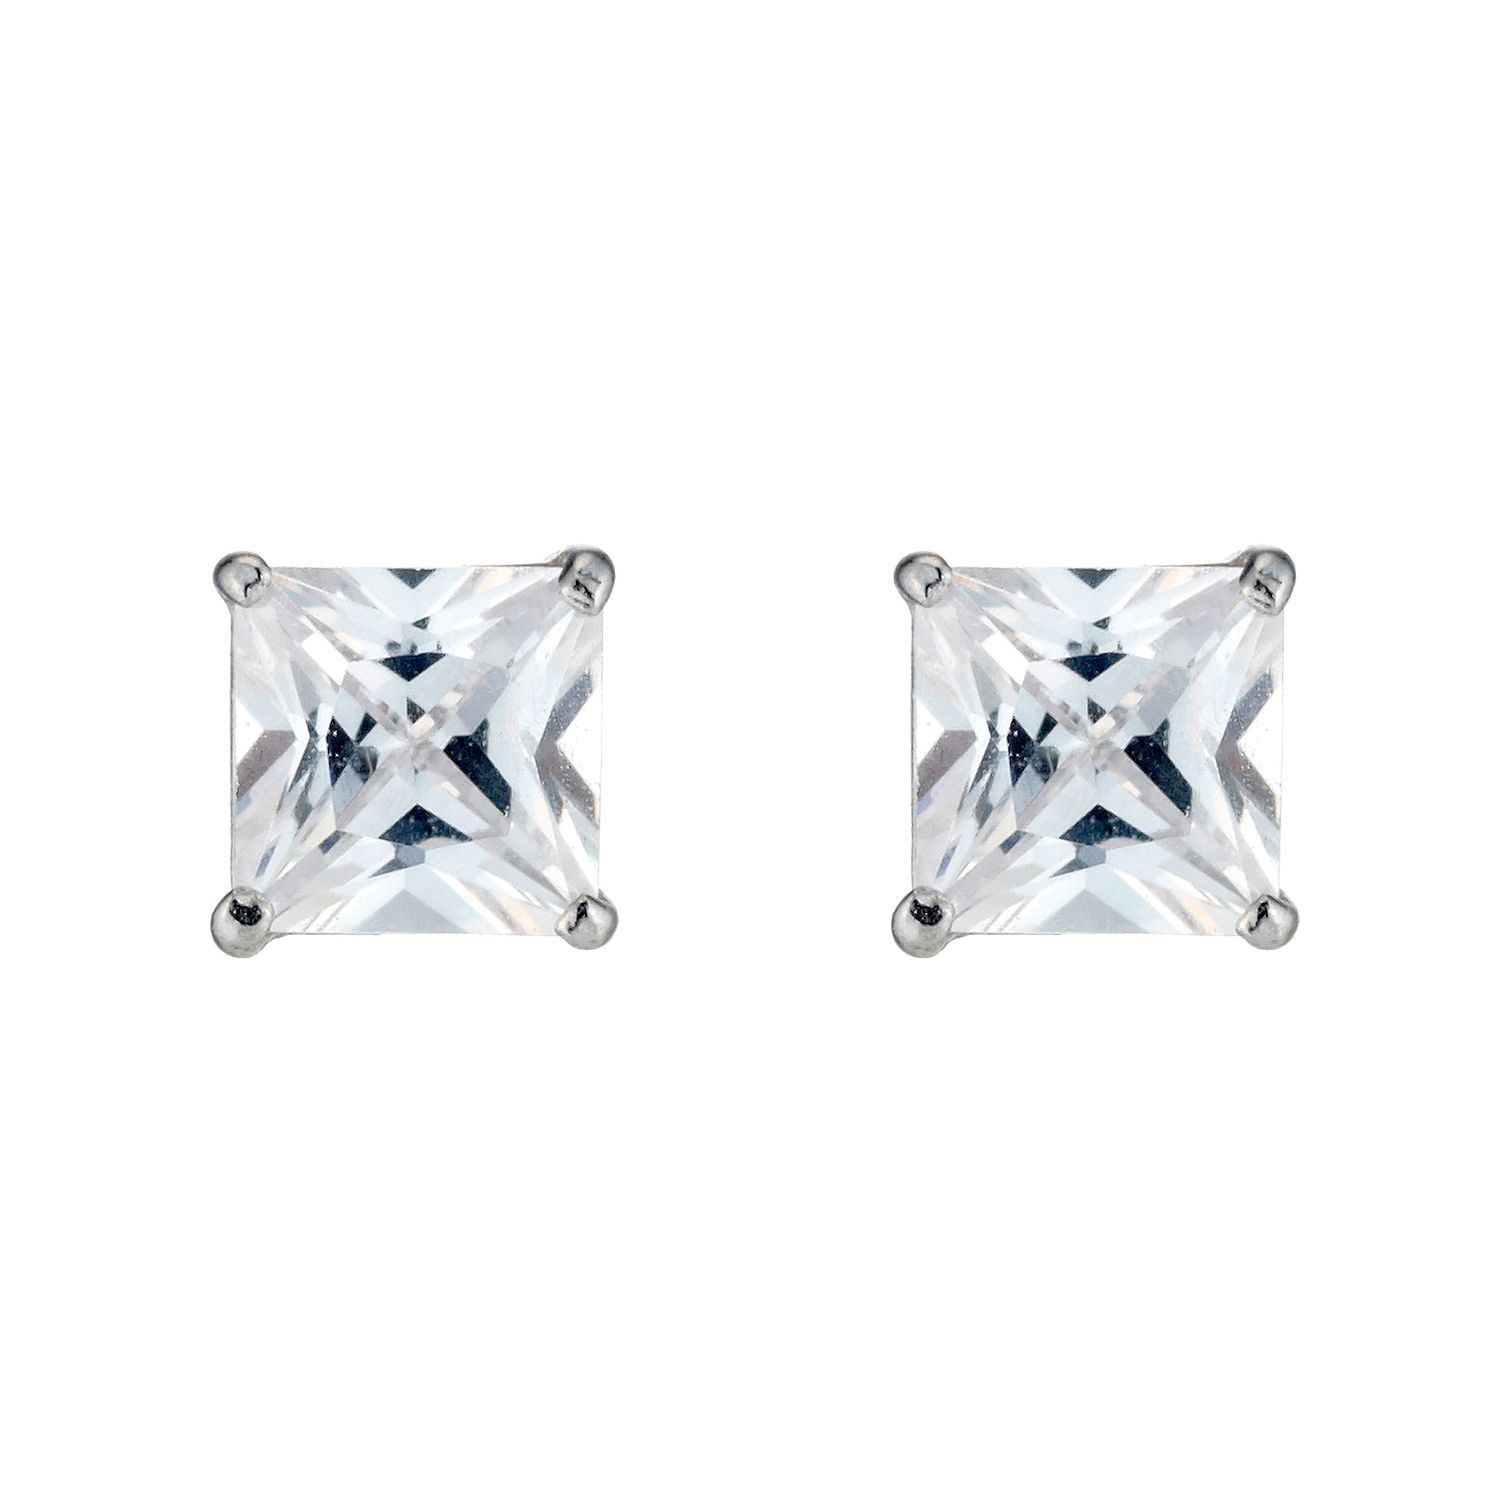 9ct White Gold Cubic Zirconia Square Stud Earrings - Product number 3416364